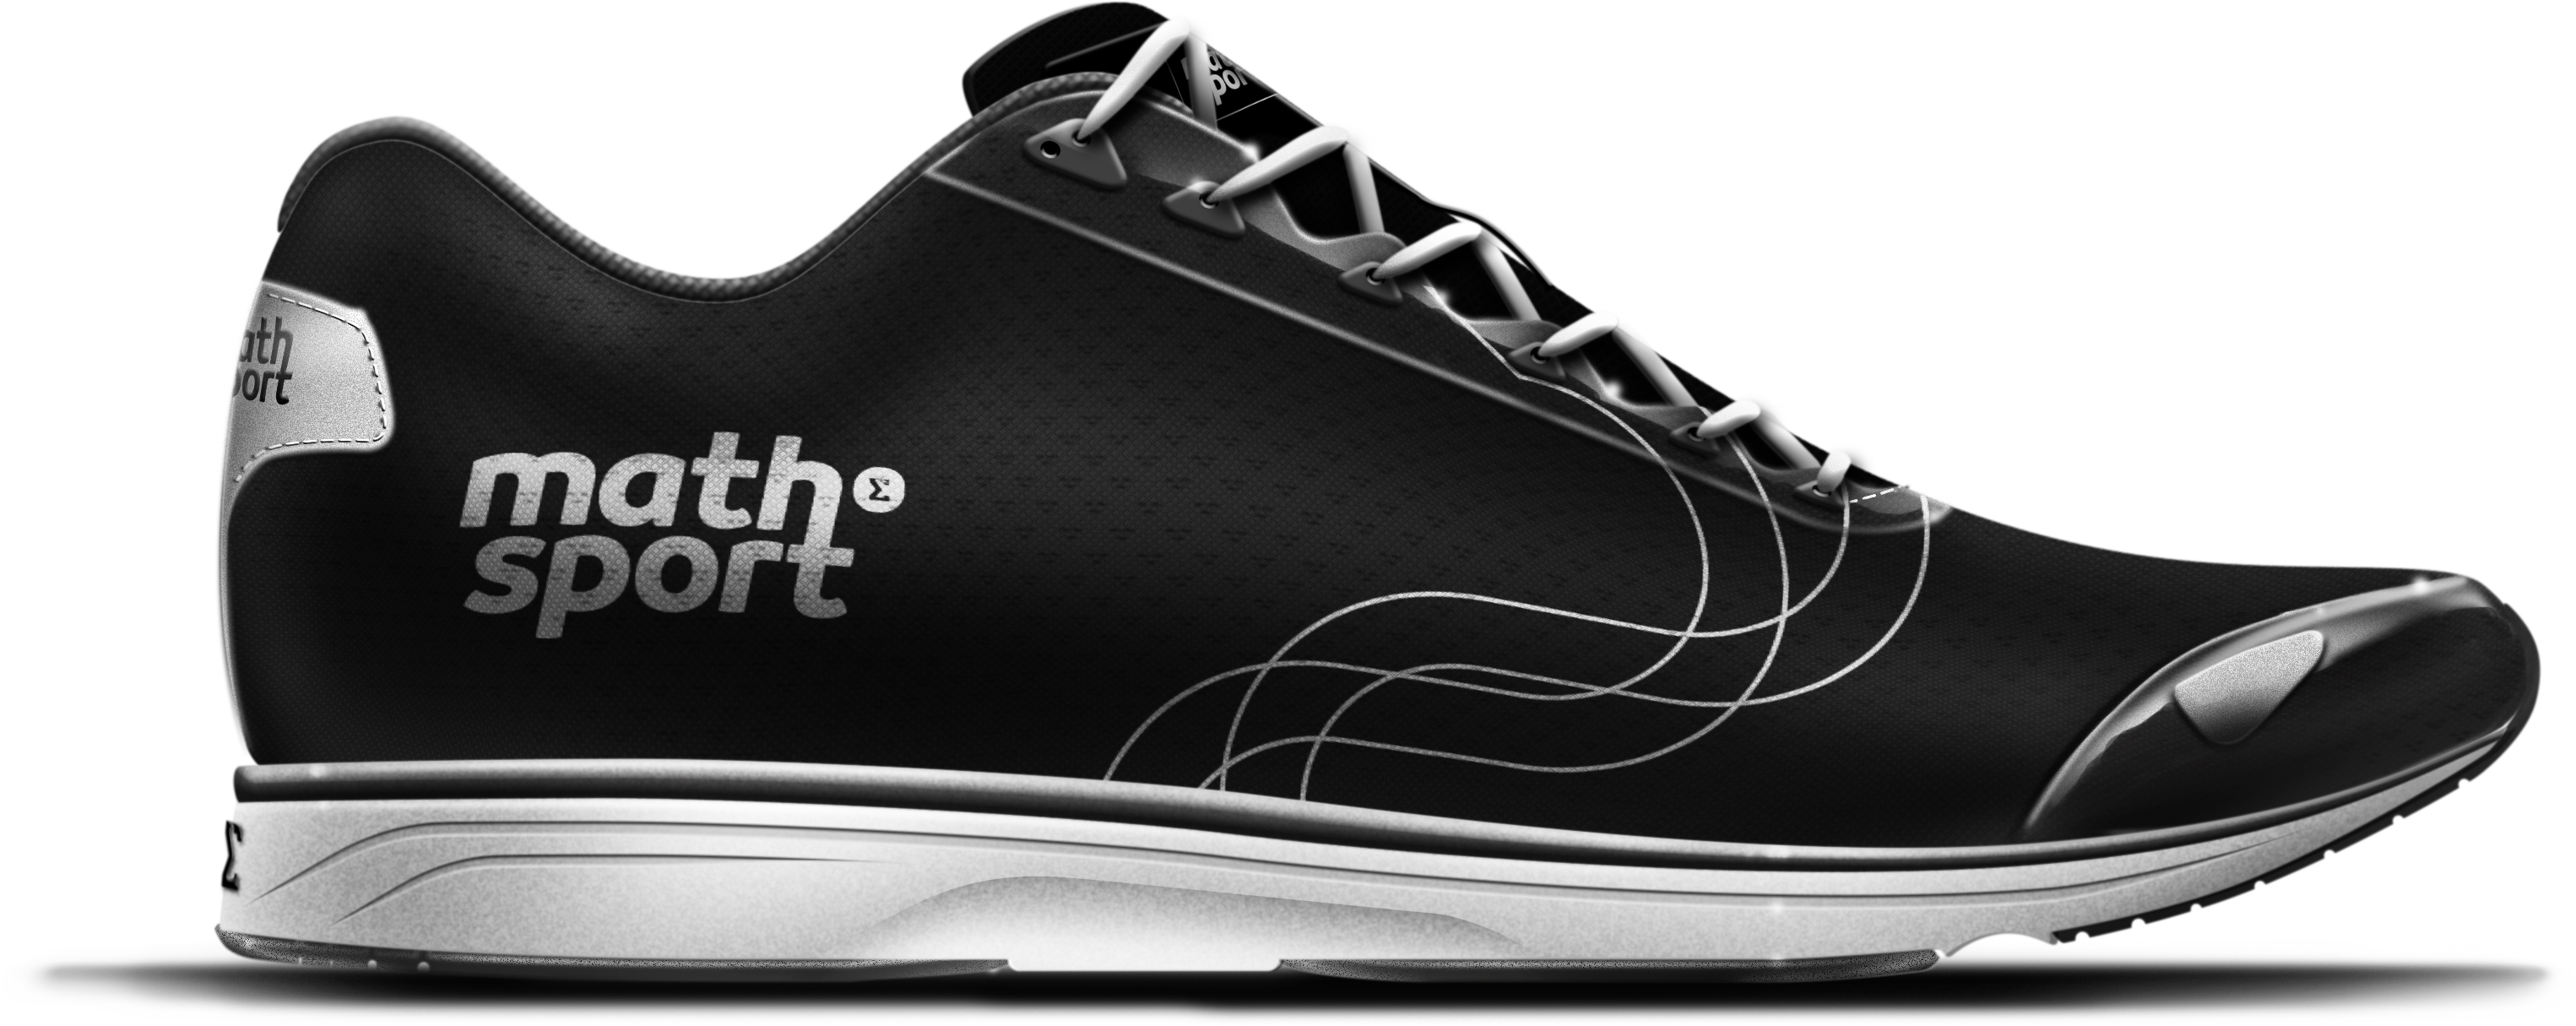 mathsportnoir - 4mm - lite trainer